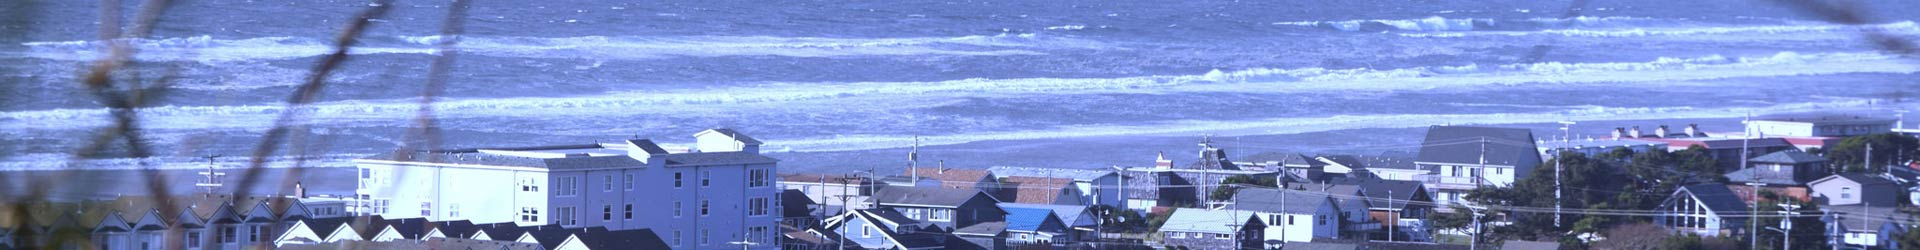 View of buildings and ocean, Rockaway Beach, Oregon